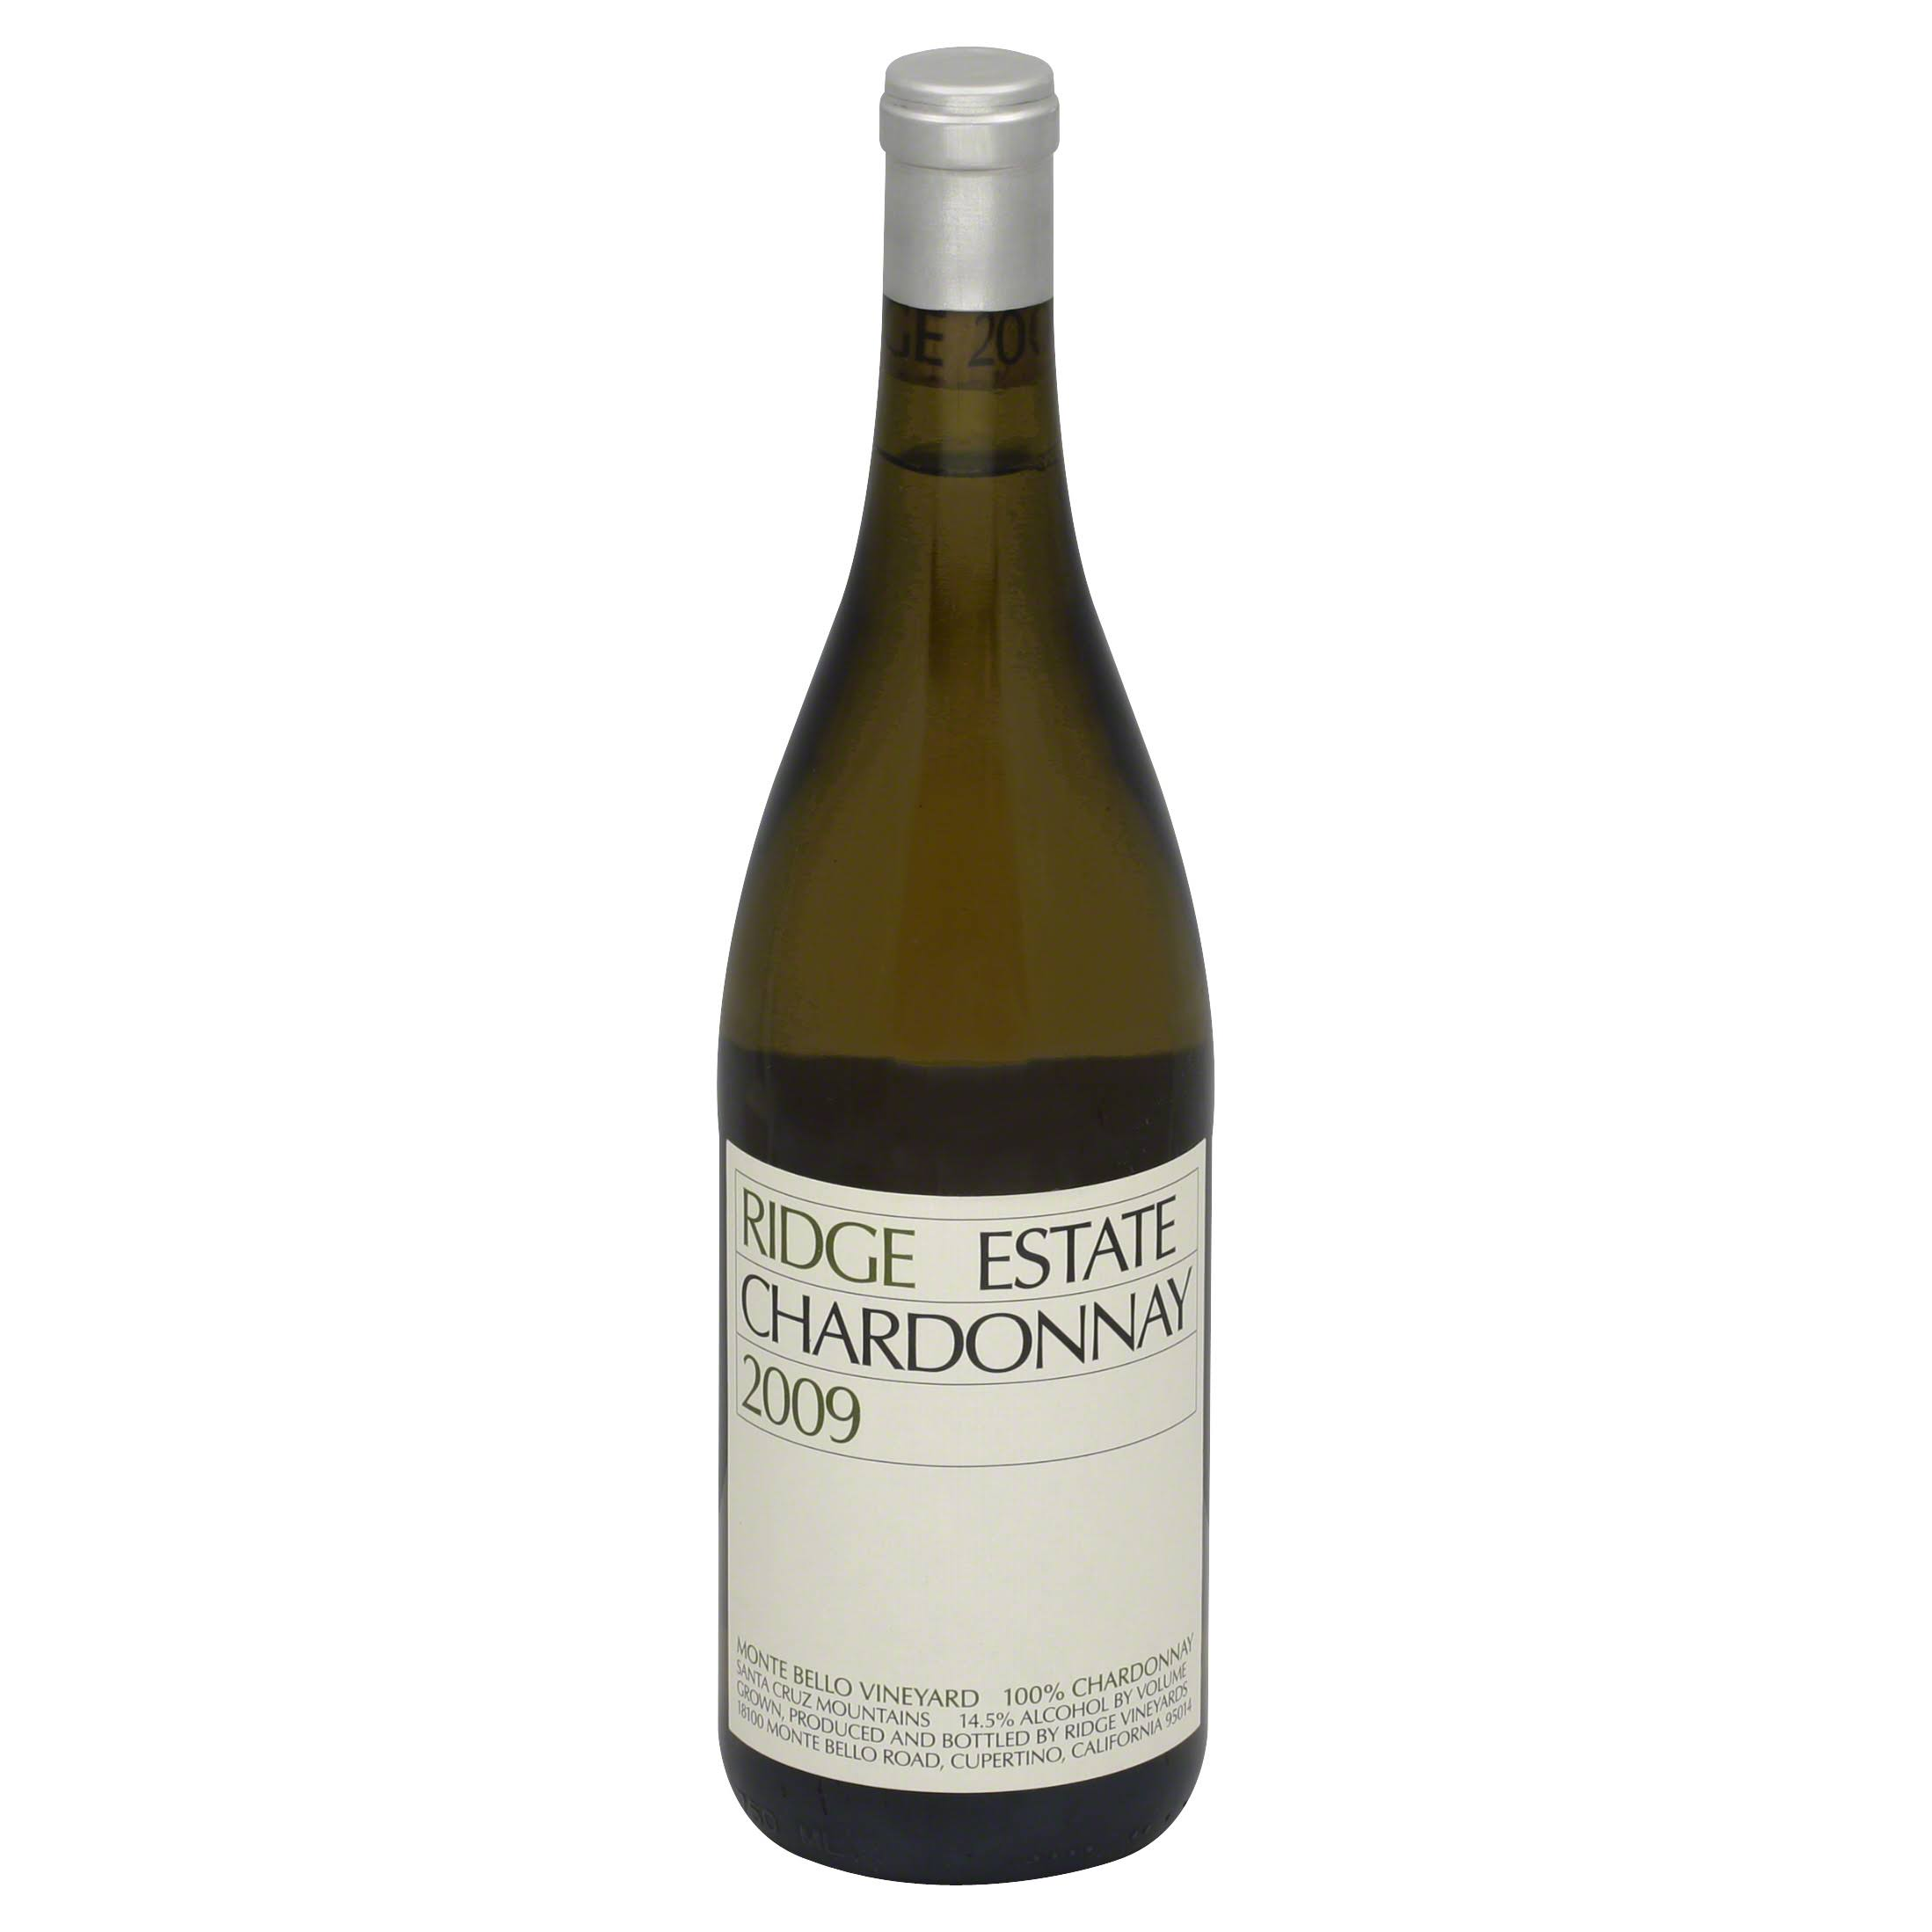 Ridge Chardonnay, Estate, Monte Bello Vineyard, Santa Cruz Mountains, 2009 - 750 ml